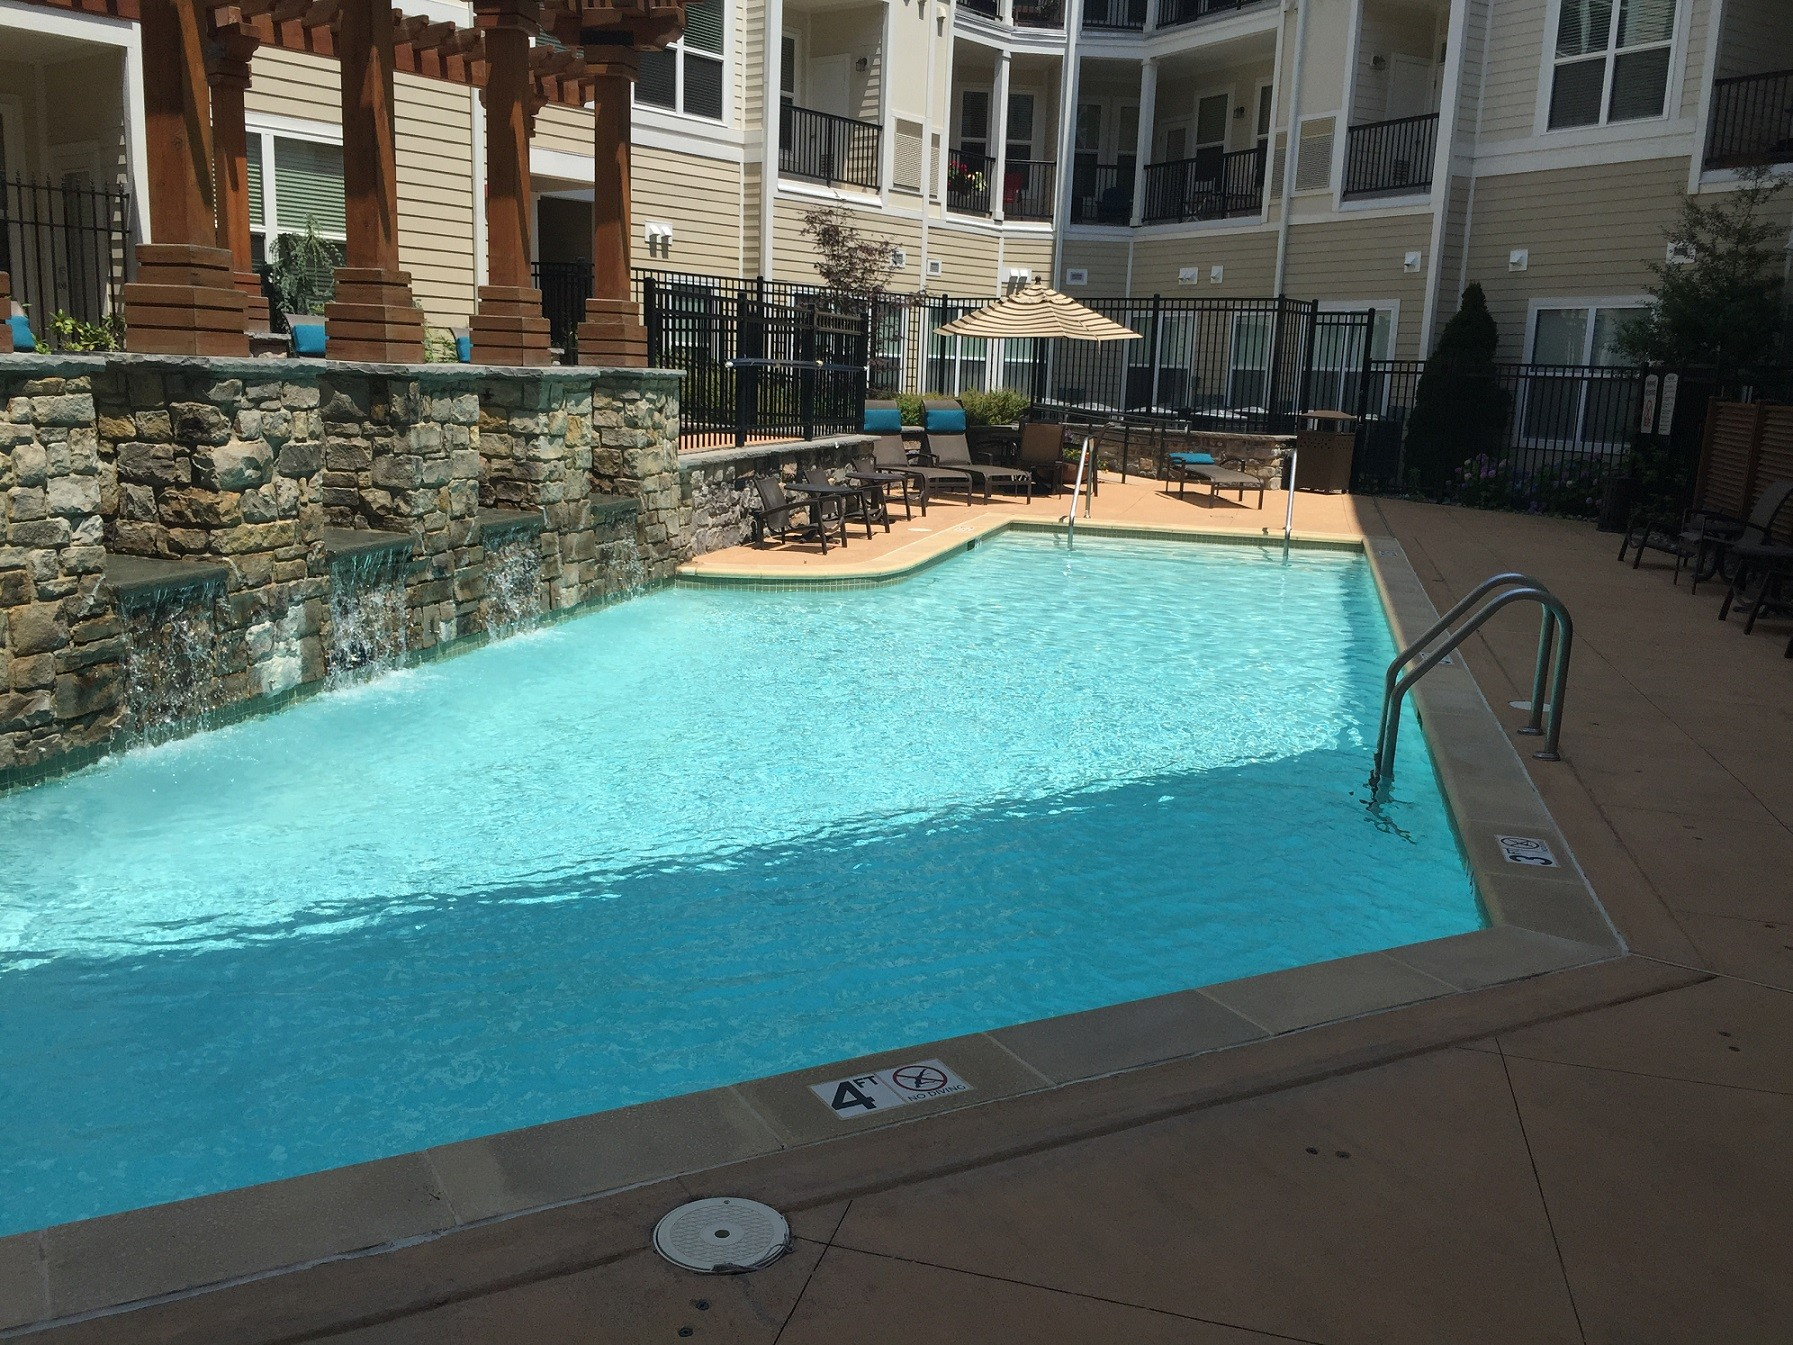 Relaxation Station Pool Lounge: Camden Dulles Station Apartments